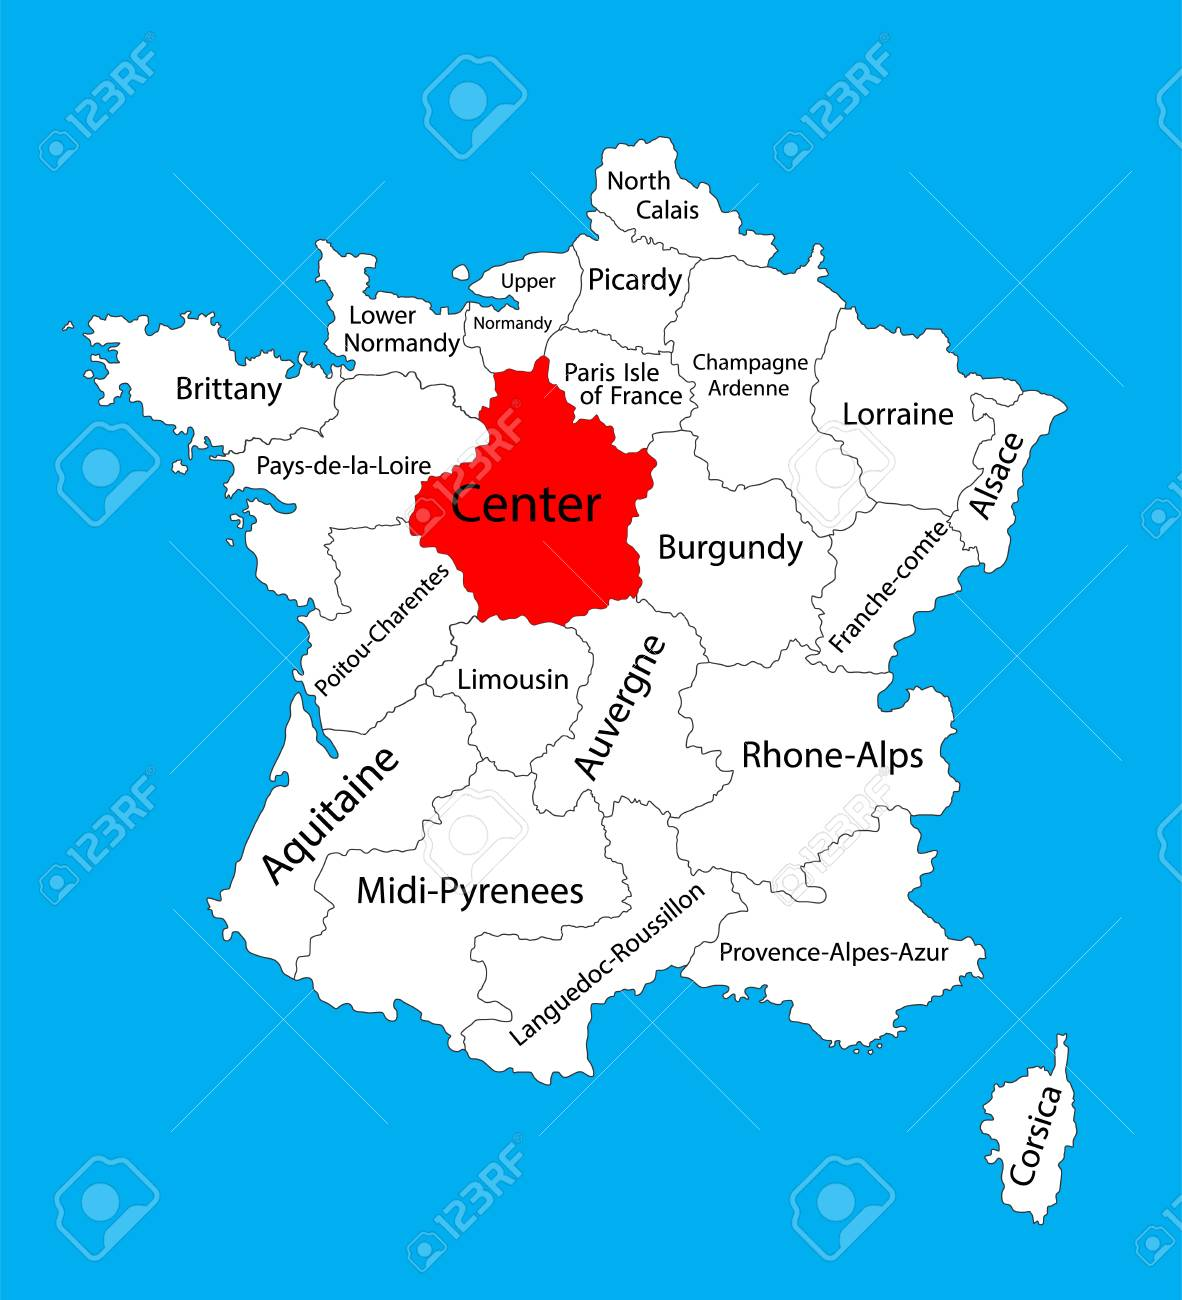 Vector map of state Centre, location on France. France vector.. on vercors france map, nord-pas-de-calais france map, vendee france map, ireland france map, auvergne france map, amsterdam france map, catalonia france map, st remy provence france map, salzburg france map, madrid france map, chartres france map, normandy france map, palais des papes france map, rome france map, de loire france map, carriveau france map, scotland france map, tours france map, the dordogne france map, austria france map,